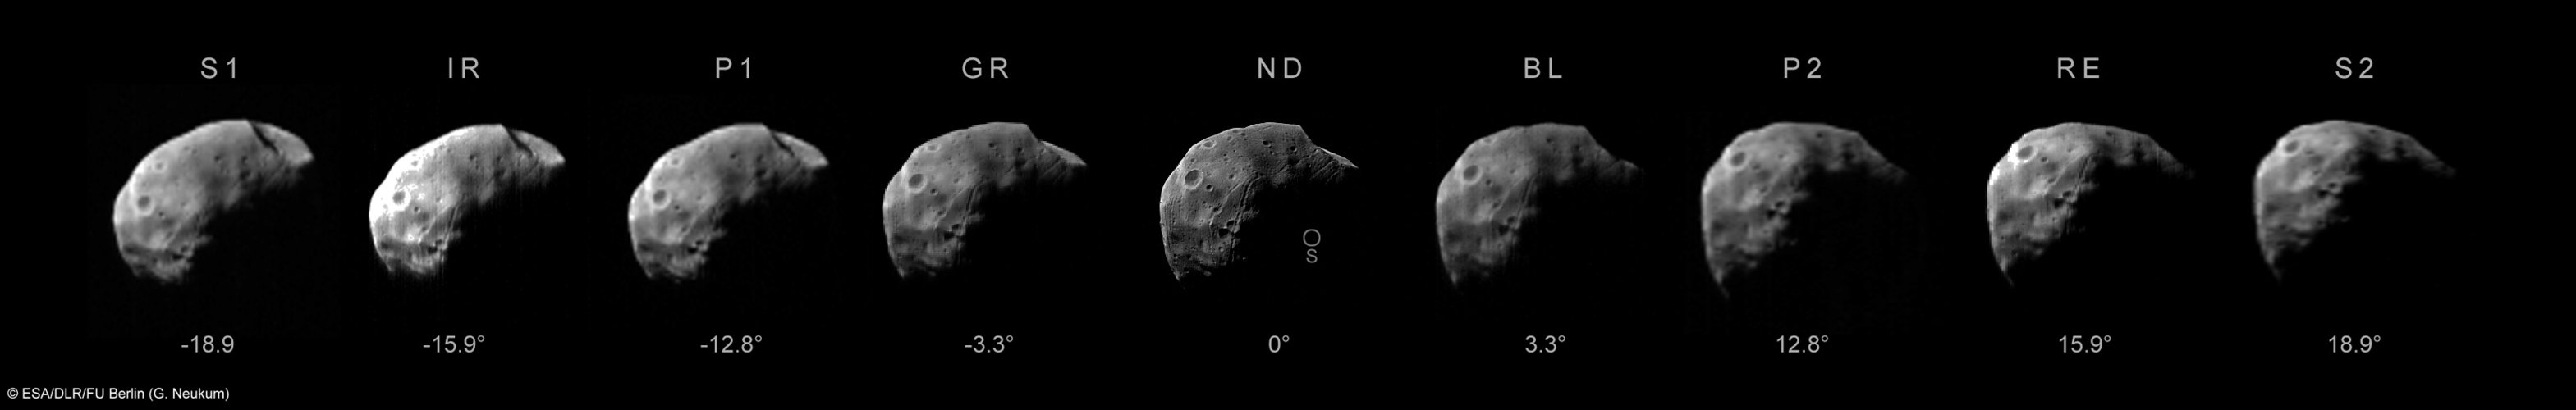 Phobos imaged by HRSC's nine imaging channels